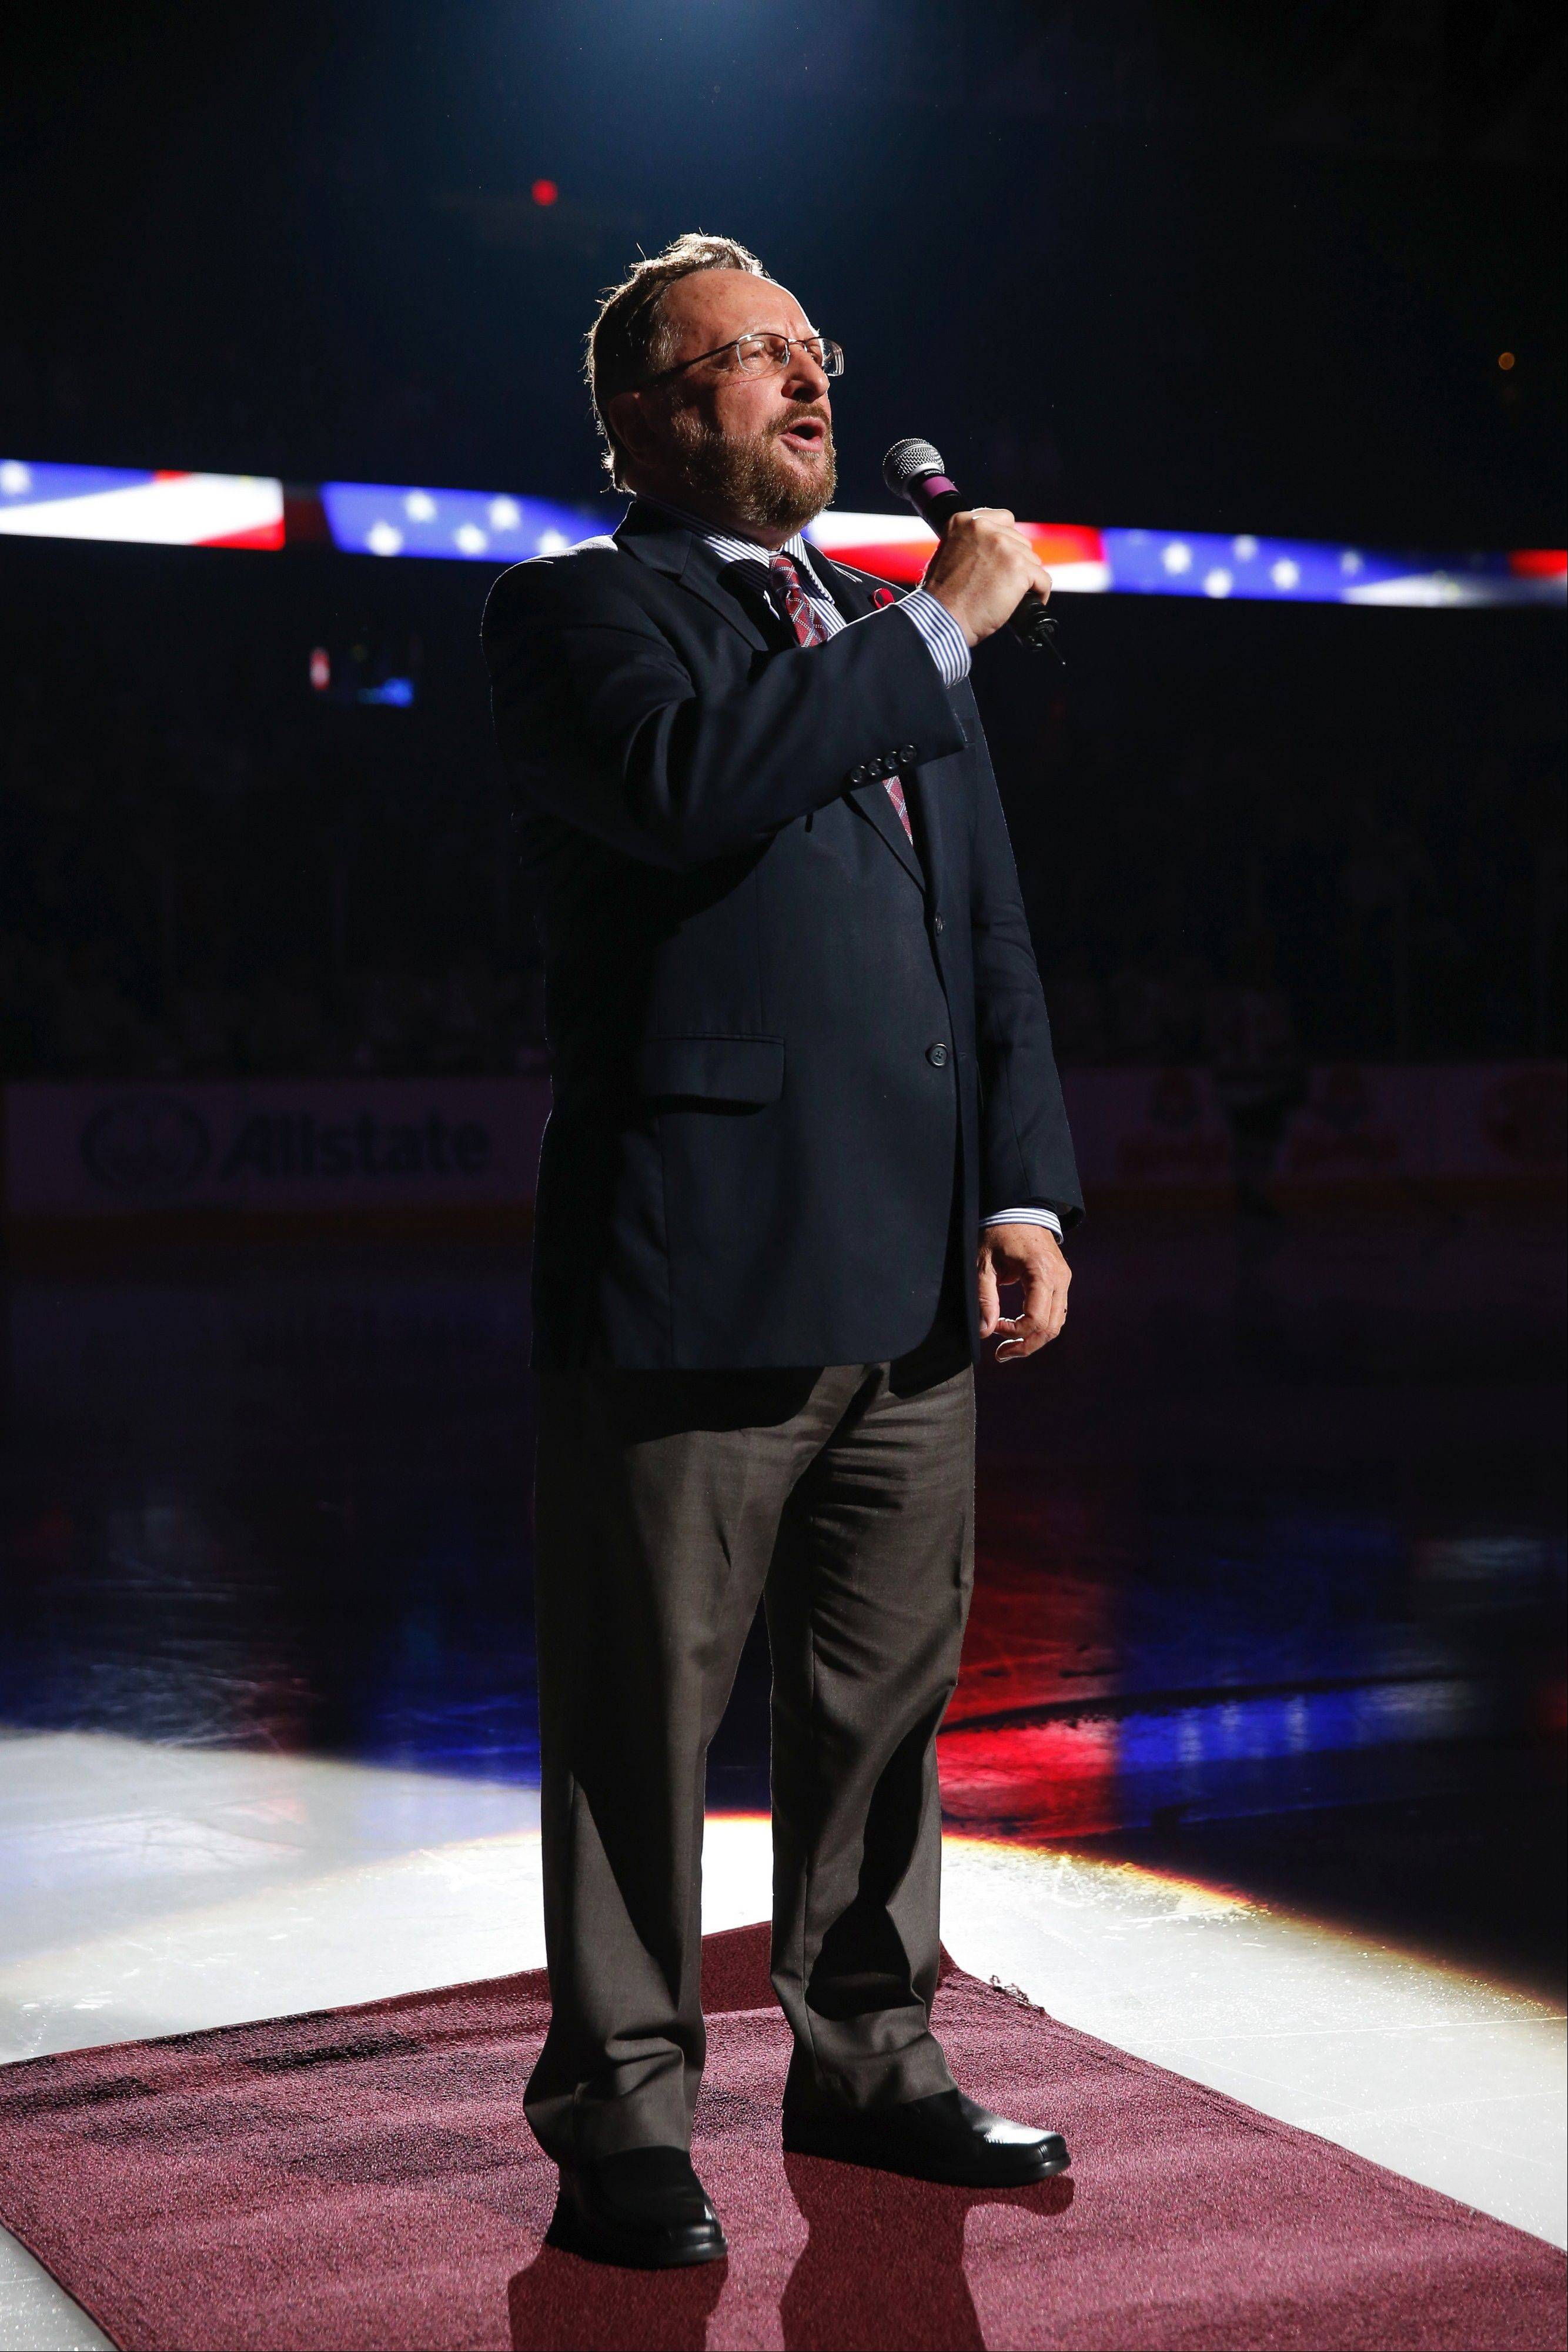 Wolves executive Wayne Messmer, shown here singing the national anthem before a hockey game at Allstate Arena, was saved by first responders nearly 20 years ago after he was shot in Chicago. This weekend the Wolves and Messmer will honor first responders and raise funds for their charities.